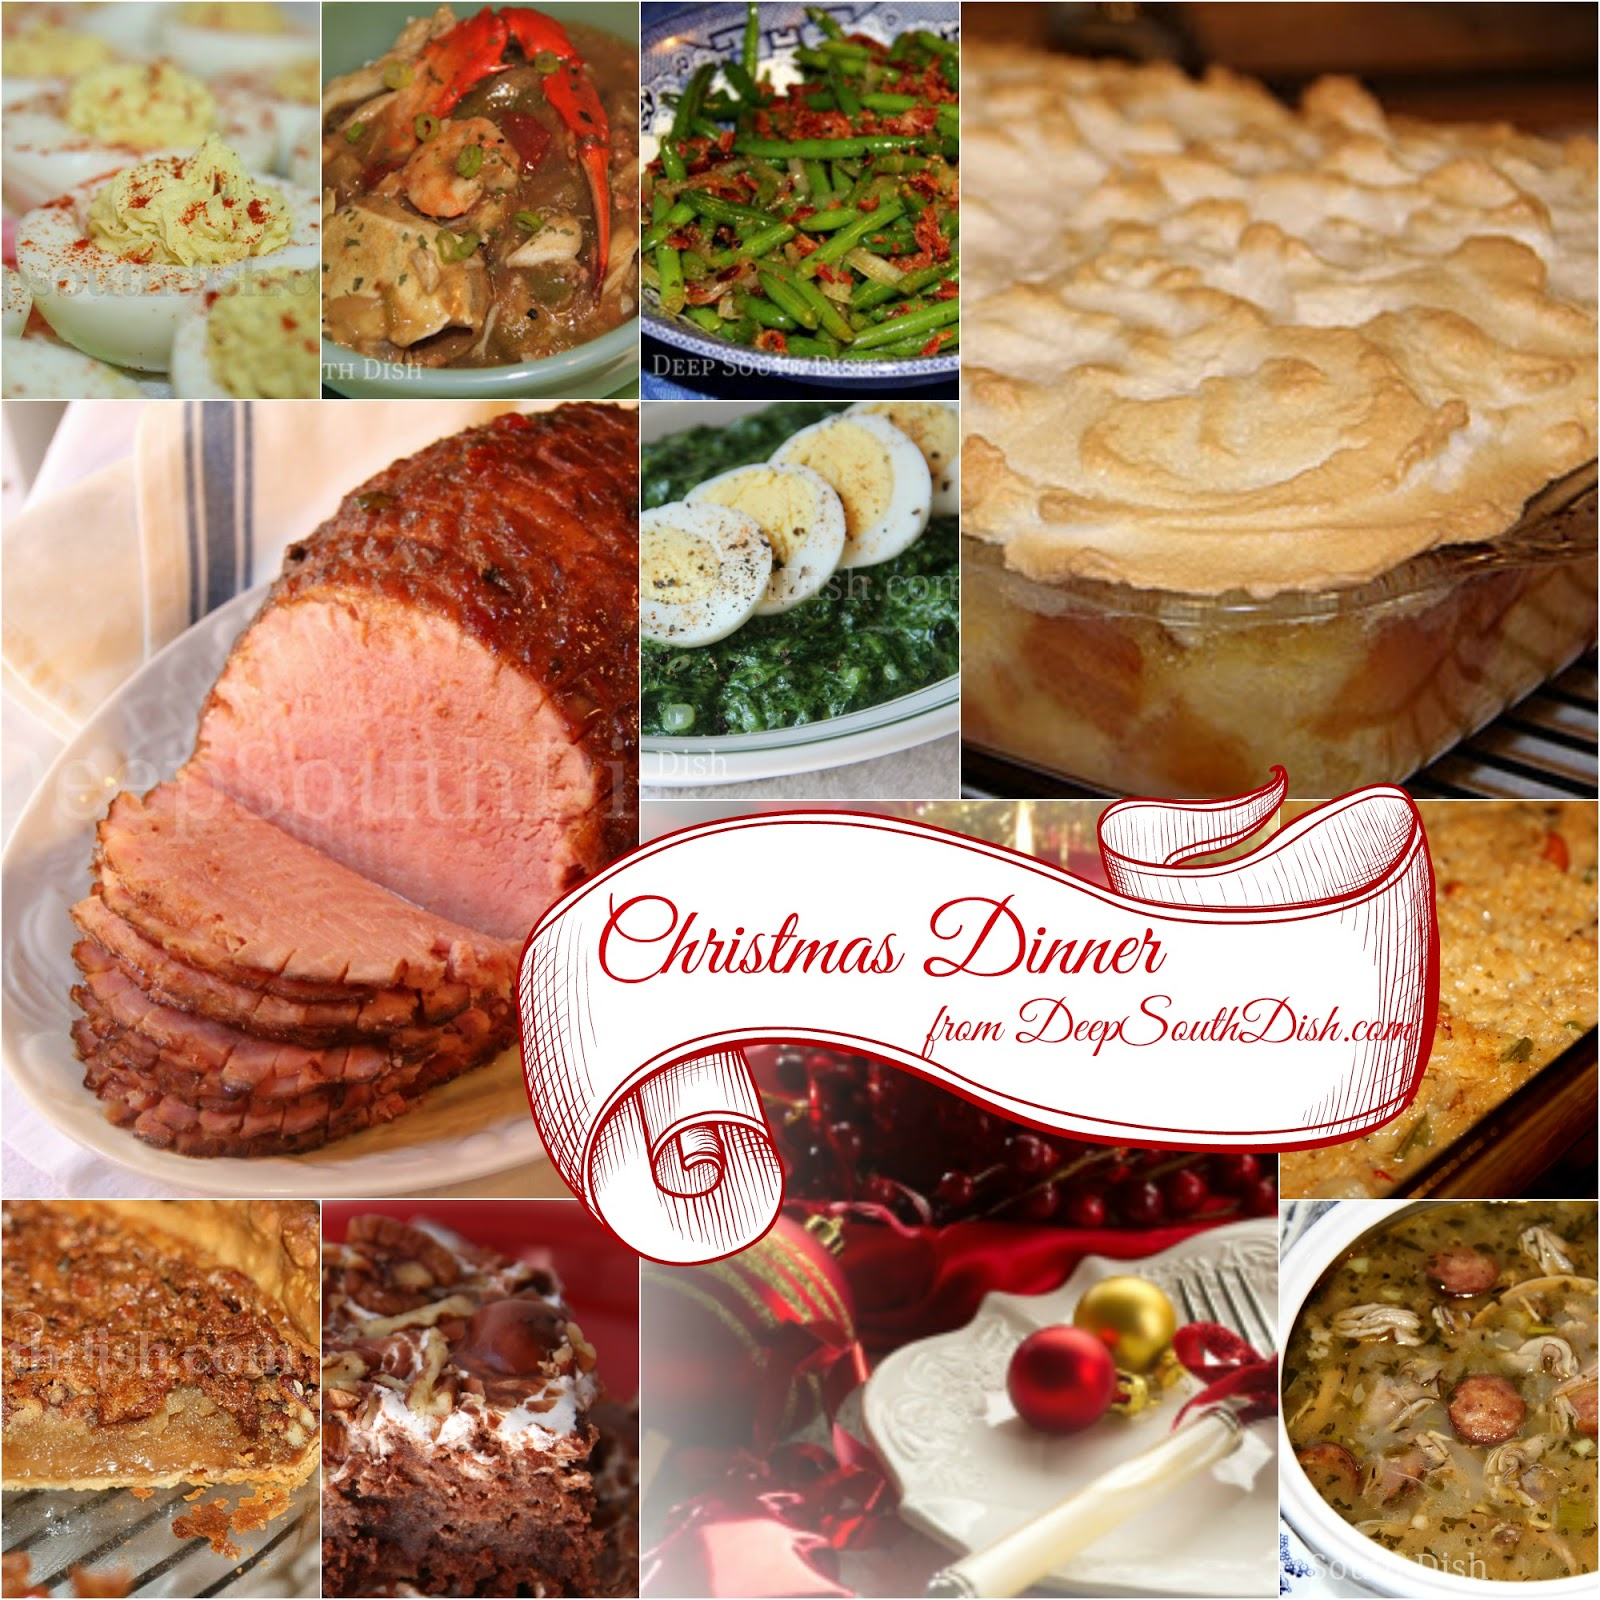 Deep South Dish Southern Christmas Dinner Menu And Recipe Ideas